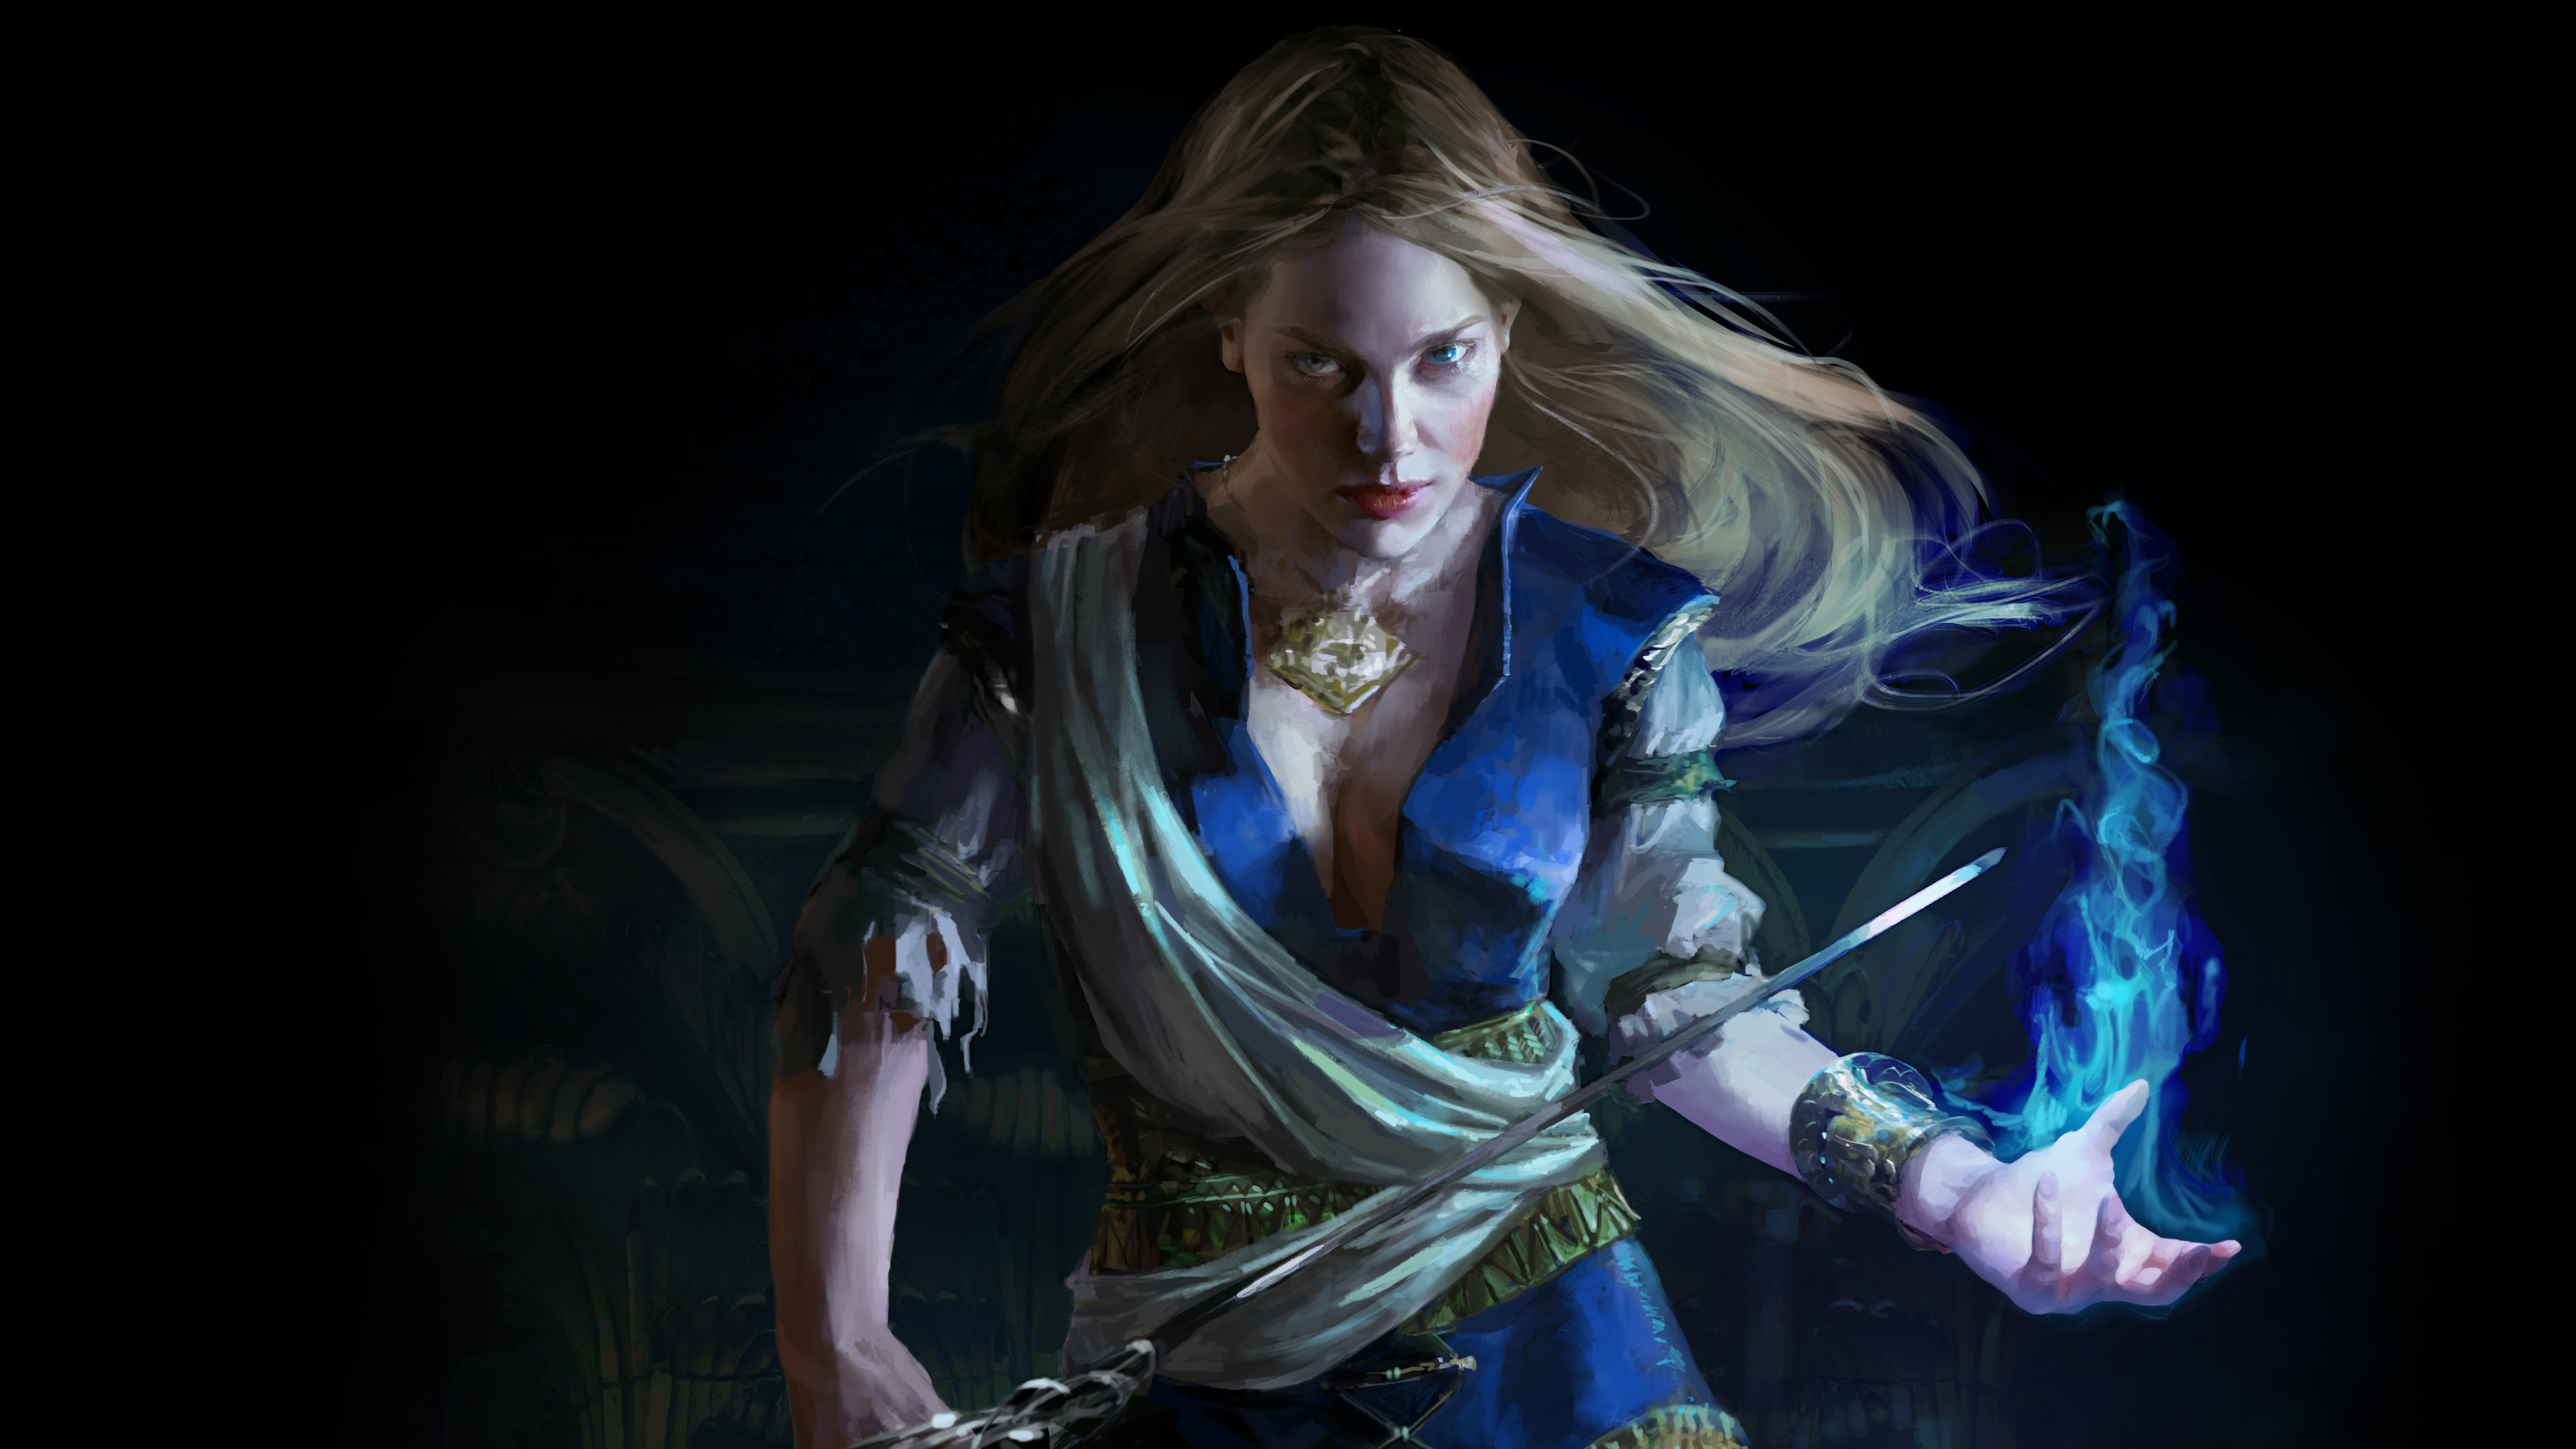 Path Of Exile 4k Hd Games 4k Wallpapers Images Backgrounds